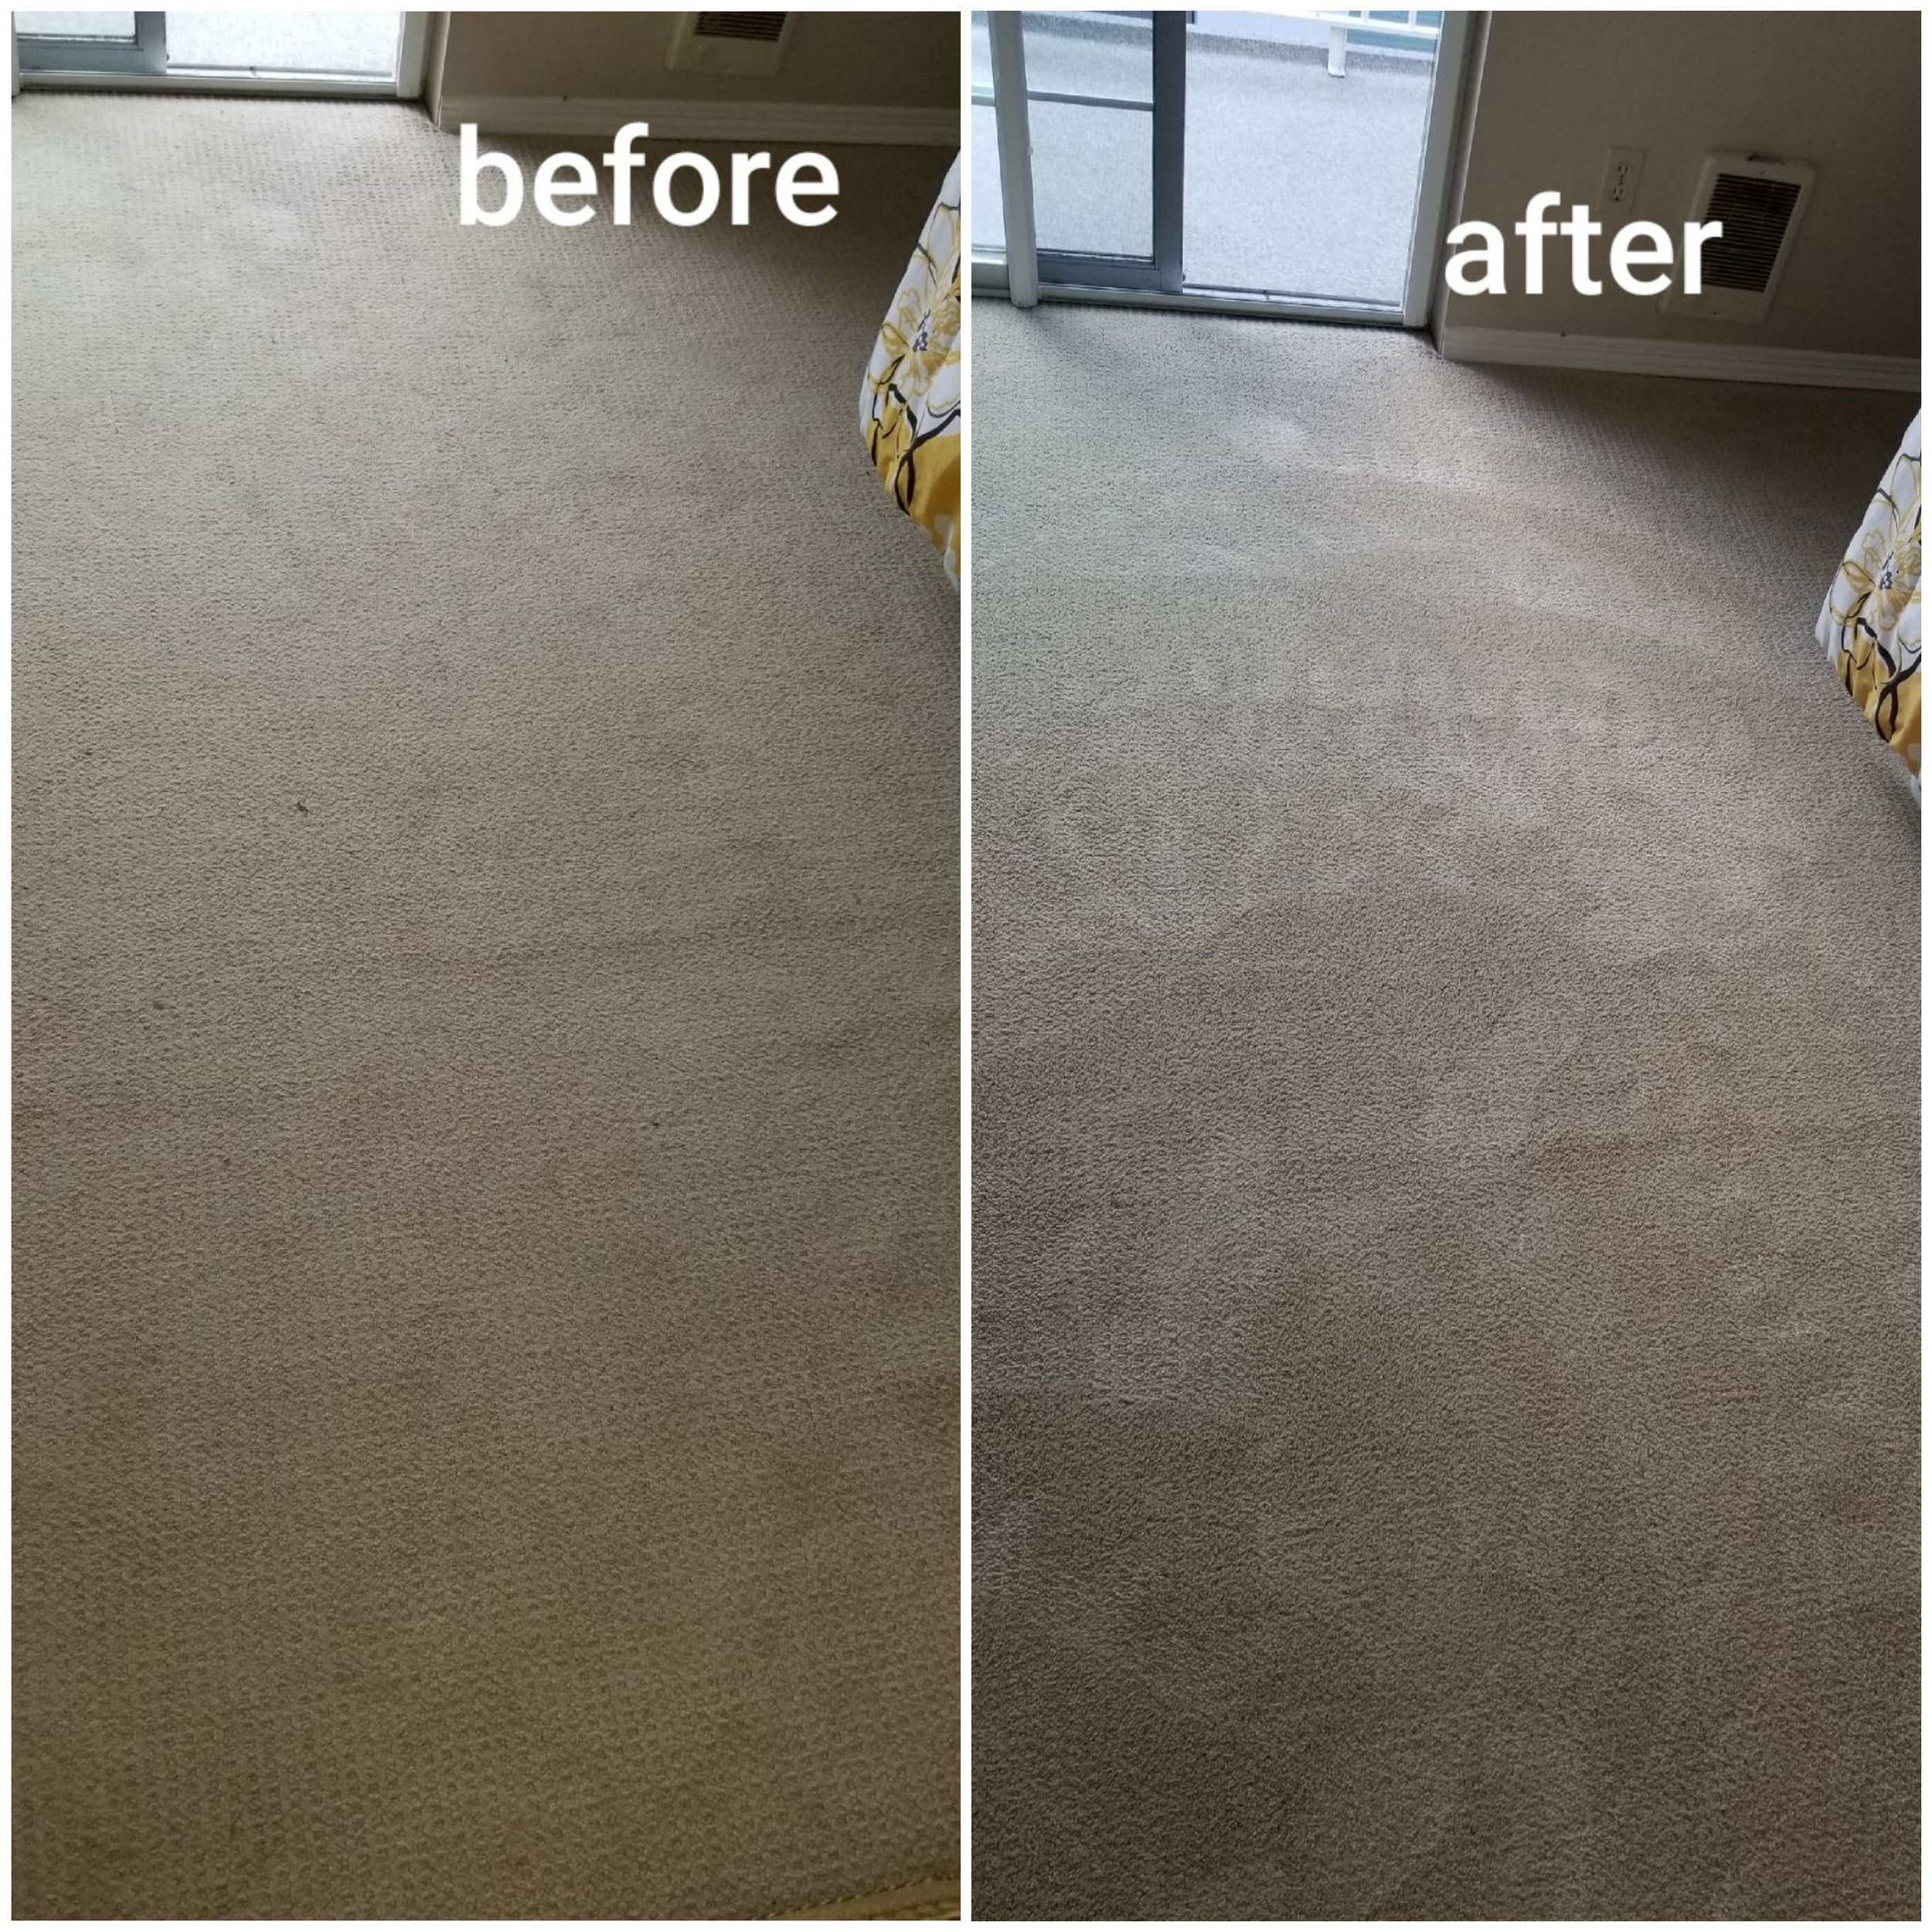 carpet cleaning in Greater Victoria B.C.